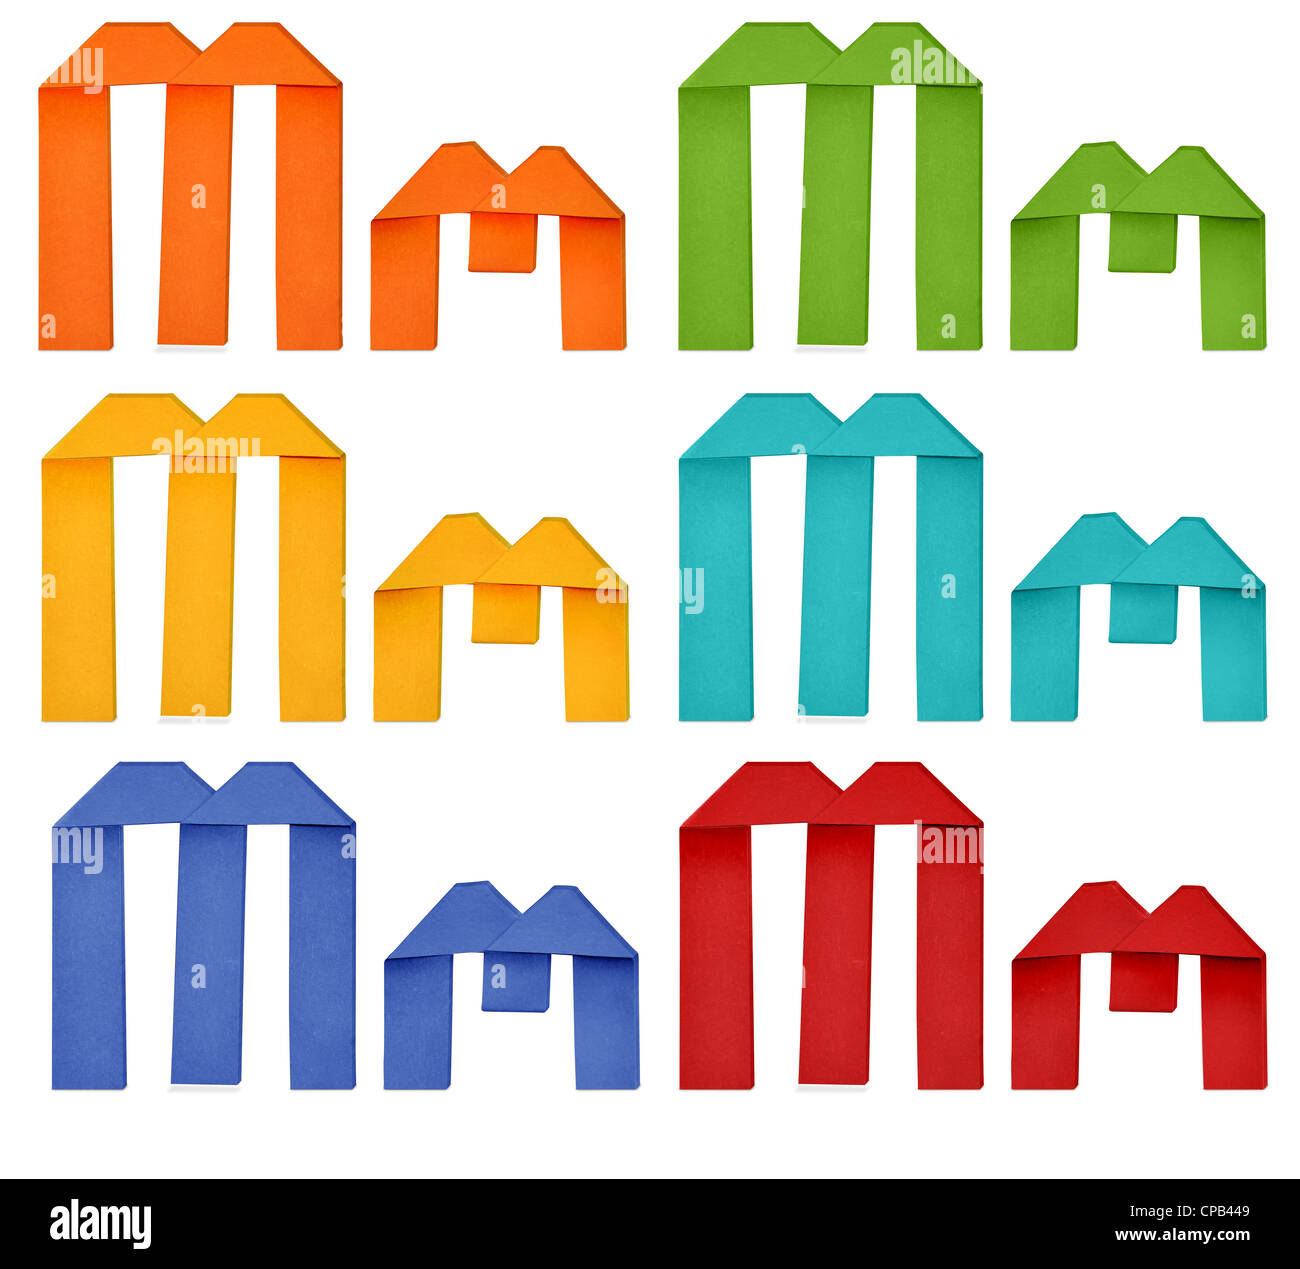 Set of capital letter and lowercase letter 'M' in various color. Origami alphabet letter on white background. - Stock Image